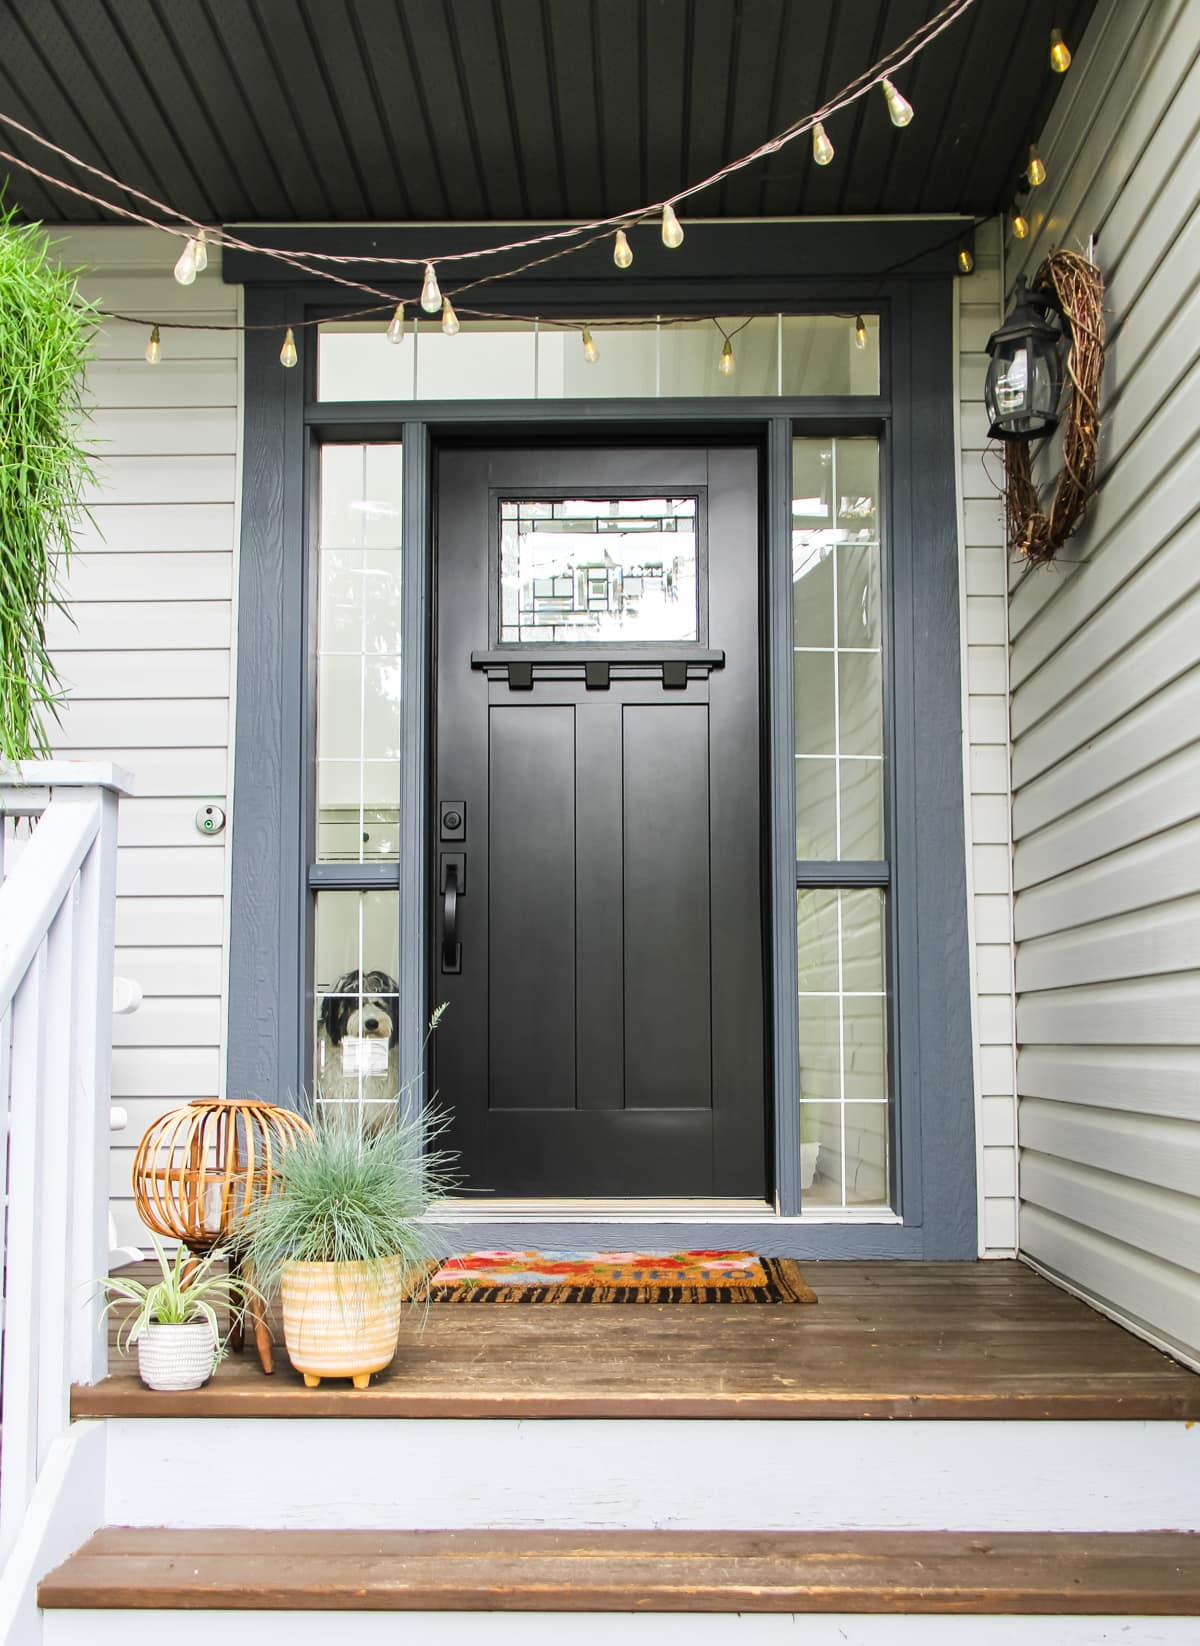 a black front door. on the porch is a flowered rug, two small planters of grass, and there are lights strung on the ceiling